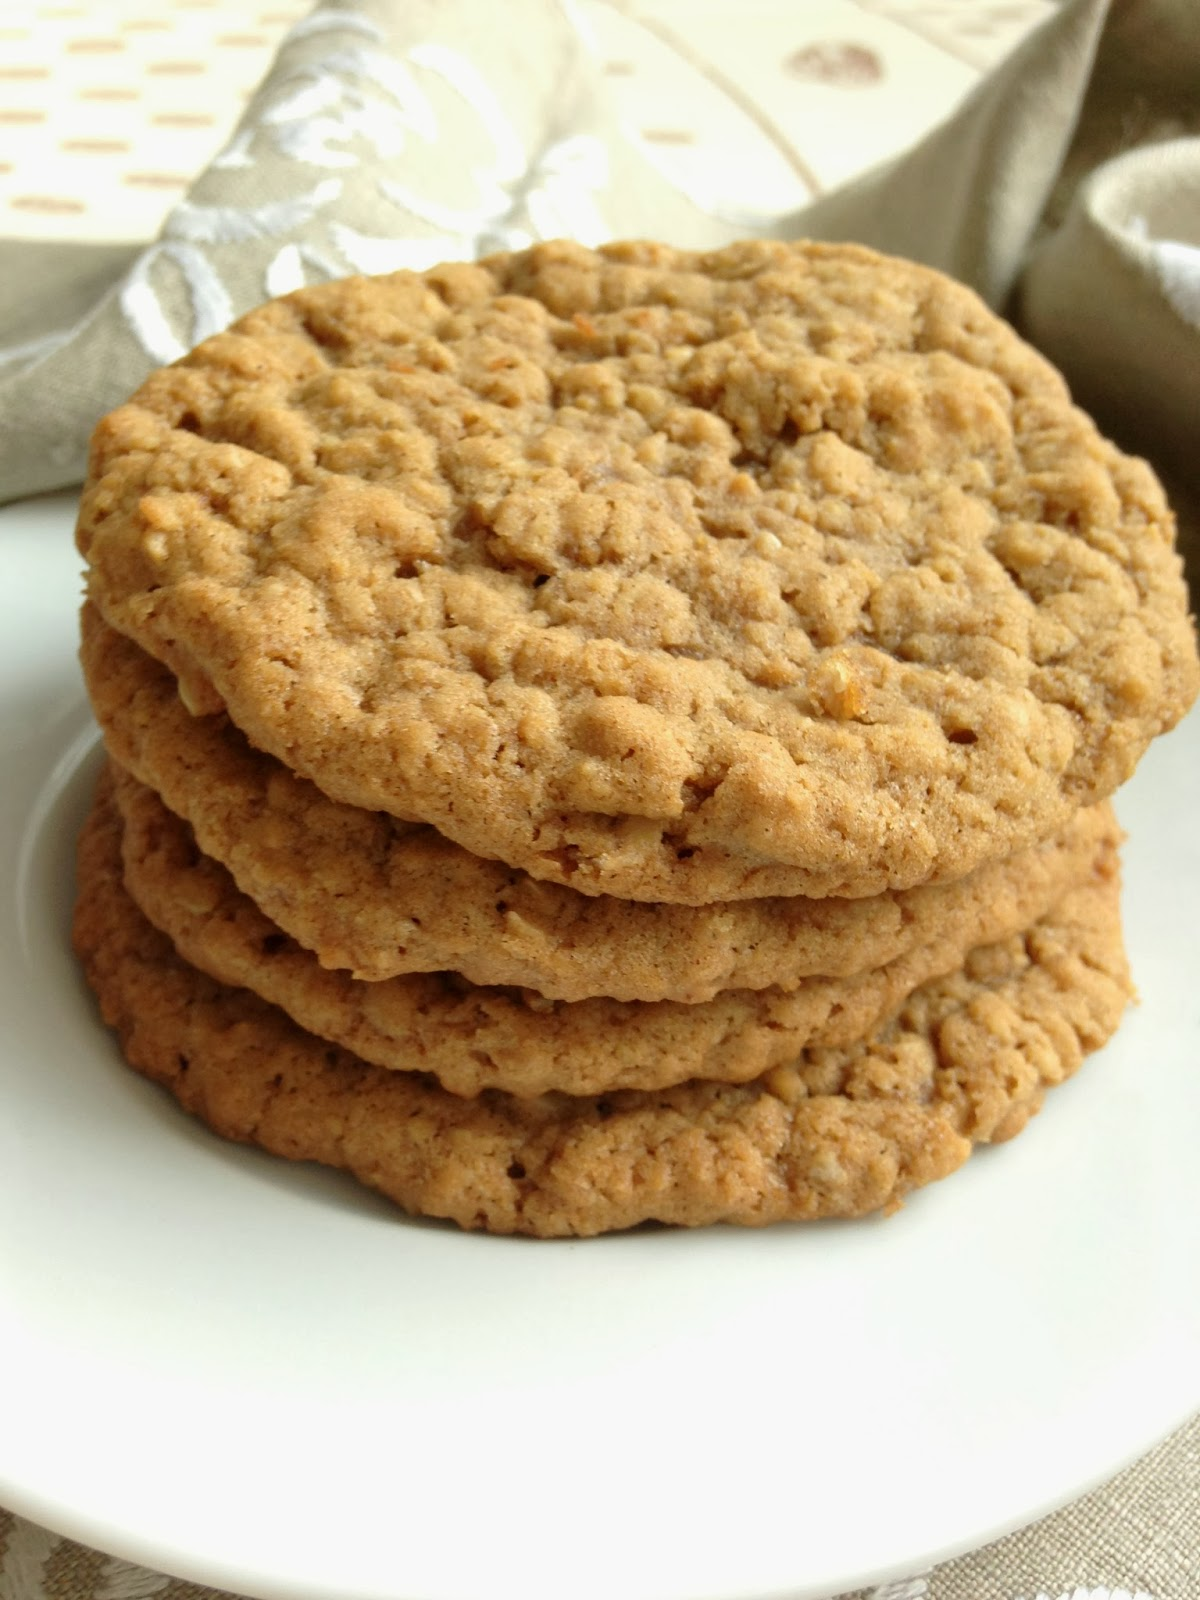 Nuts about food: Chewy cinnamon oatmeal cookies and musings